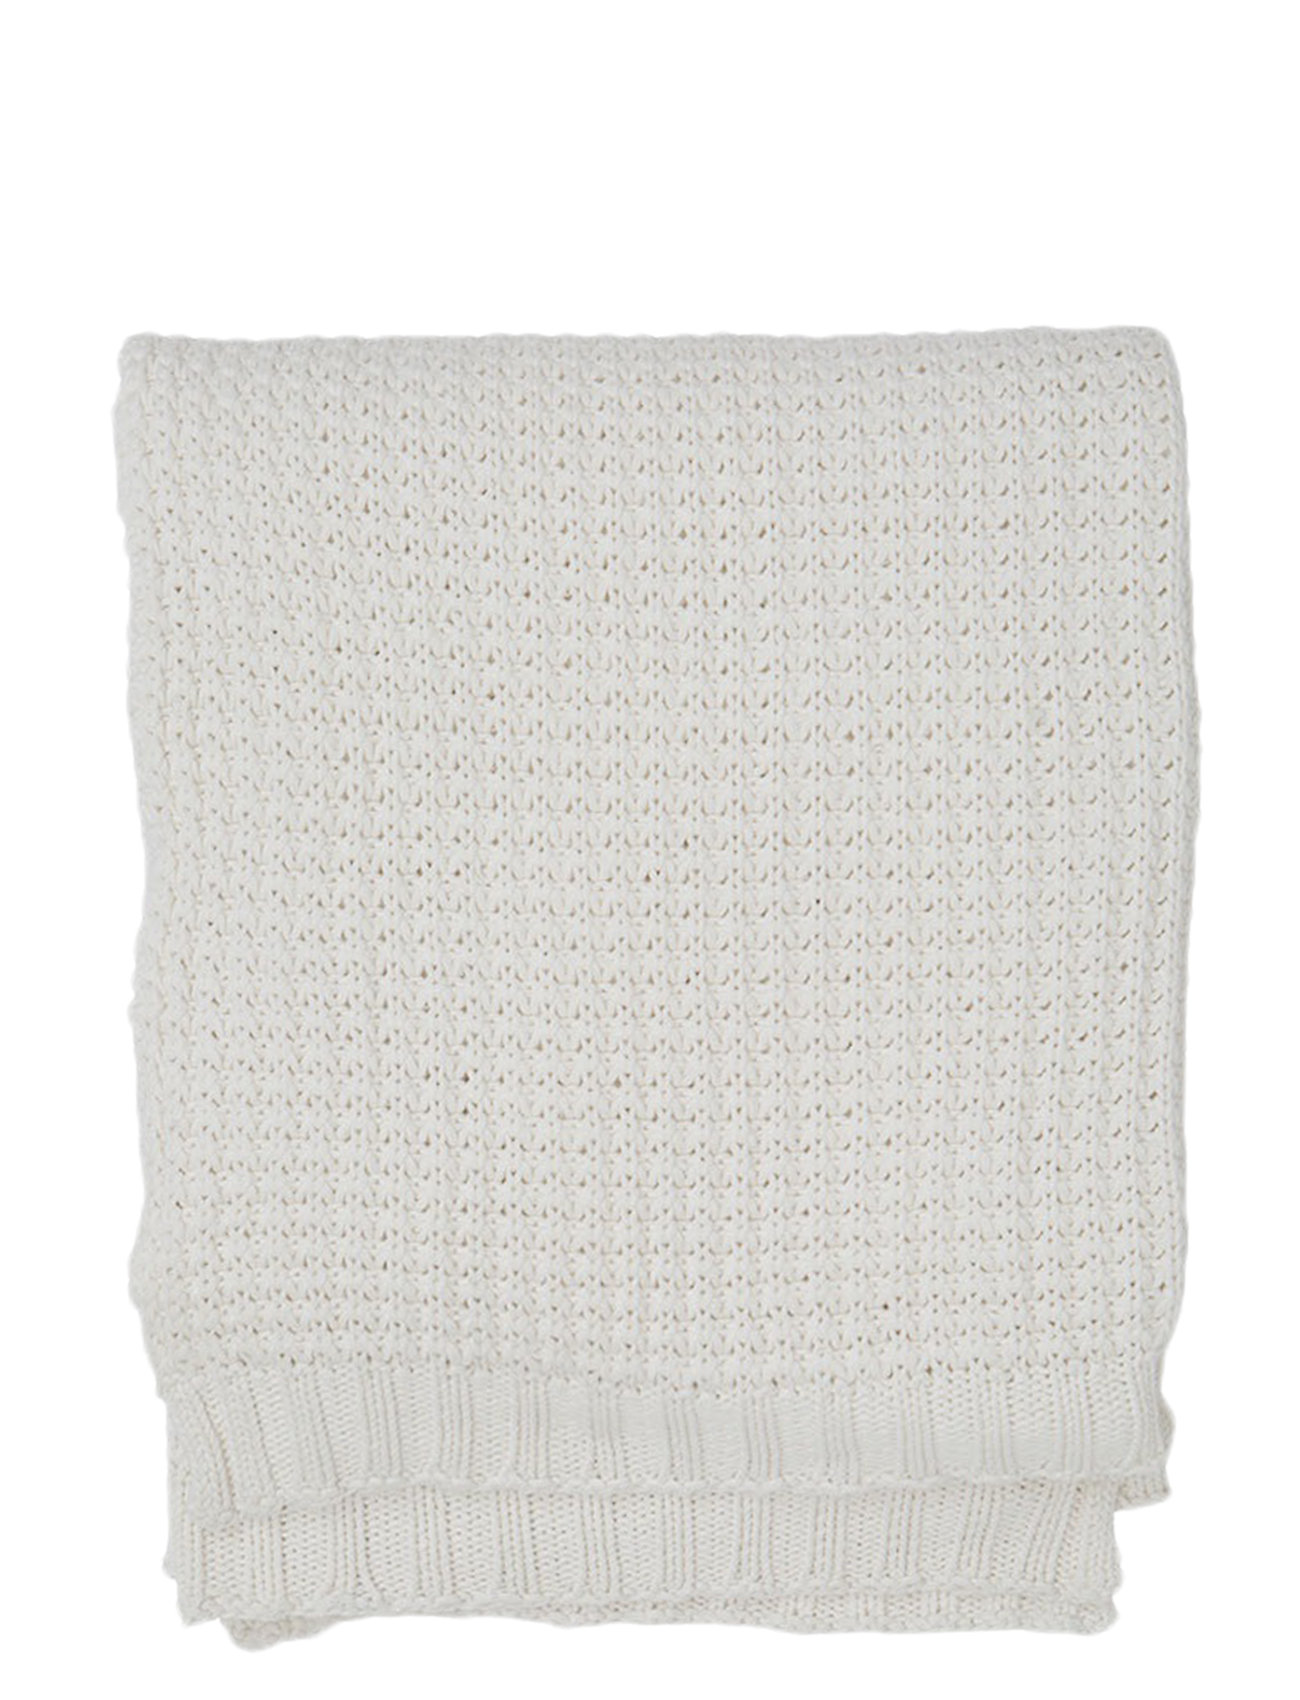 Lexington Home Knitted Cotton Throw - BEIGE